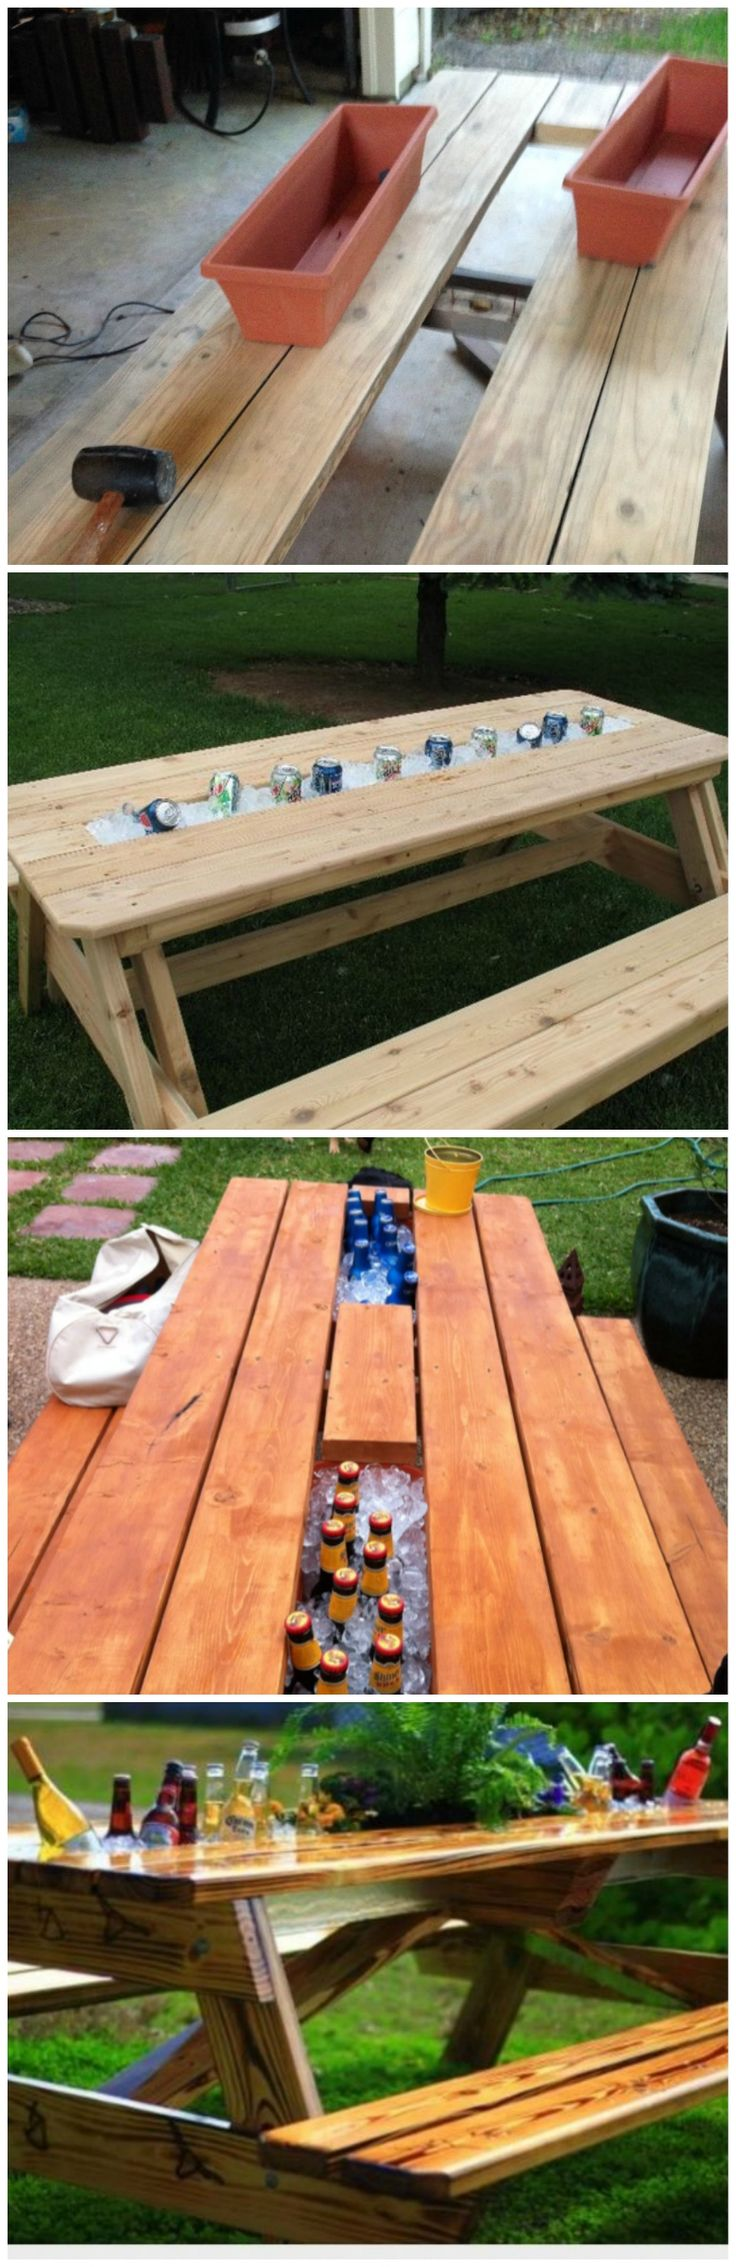 Replace board of picnic table with rain gutter. Fill with ice and enjoy! ... How…